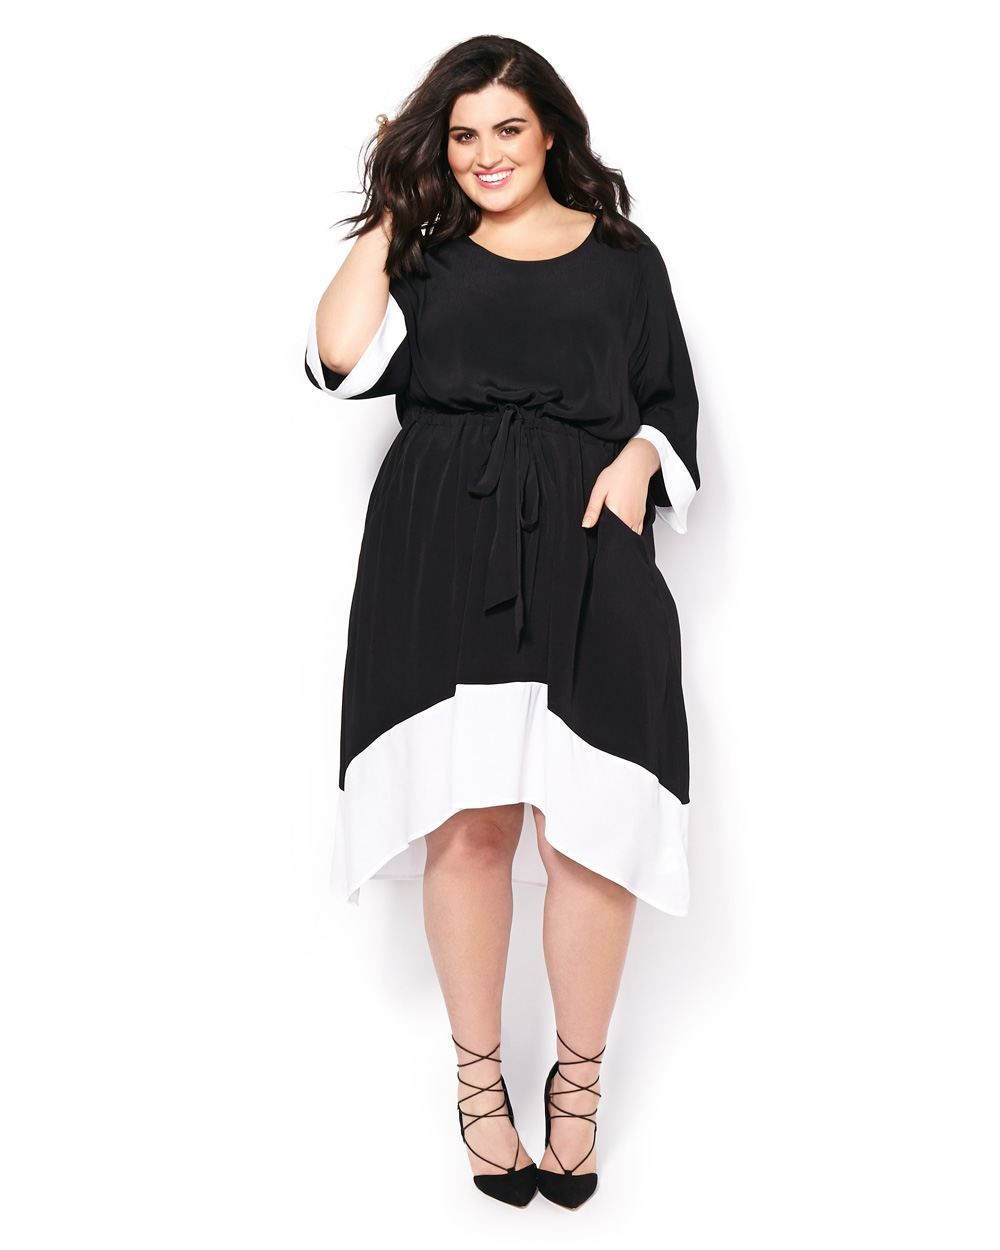 Be Effortlessly Elegant In This Chic Plus Size Dress From Melissa